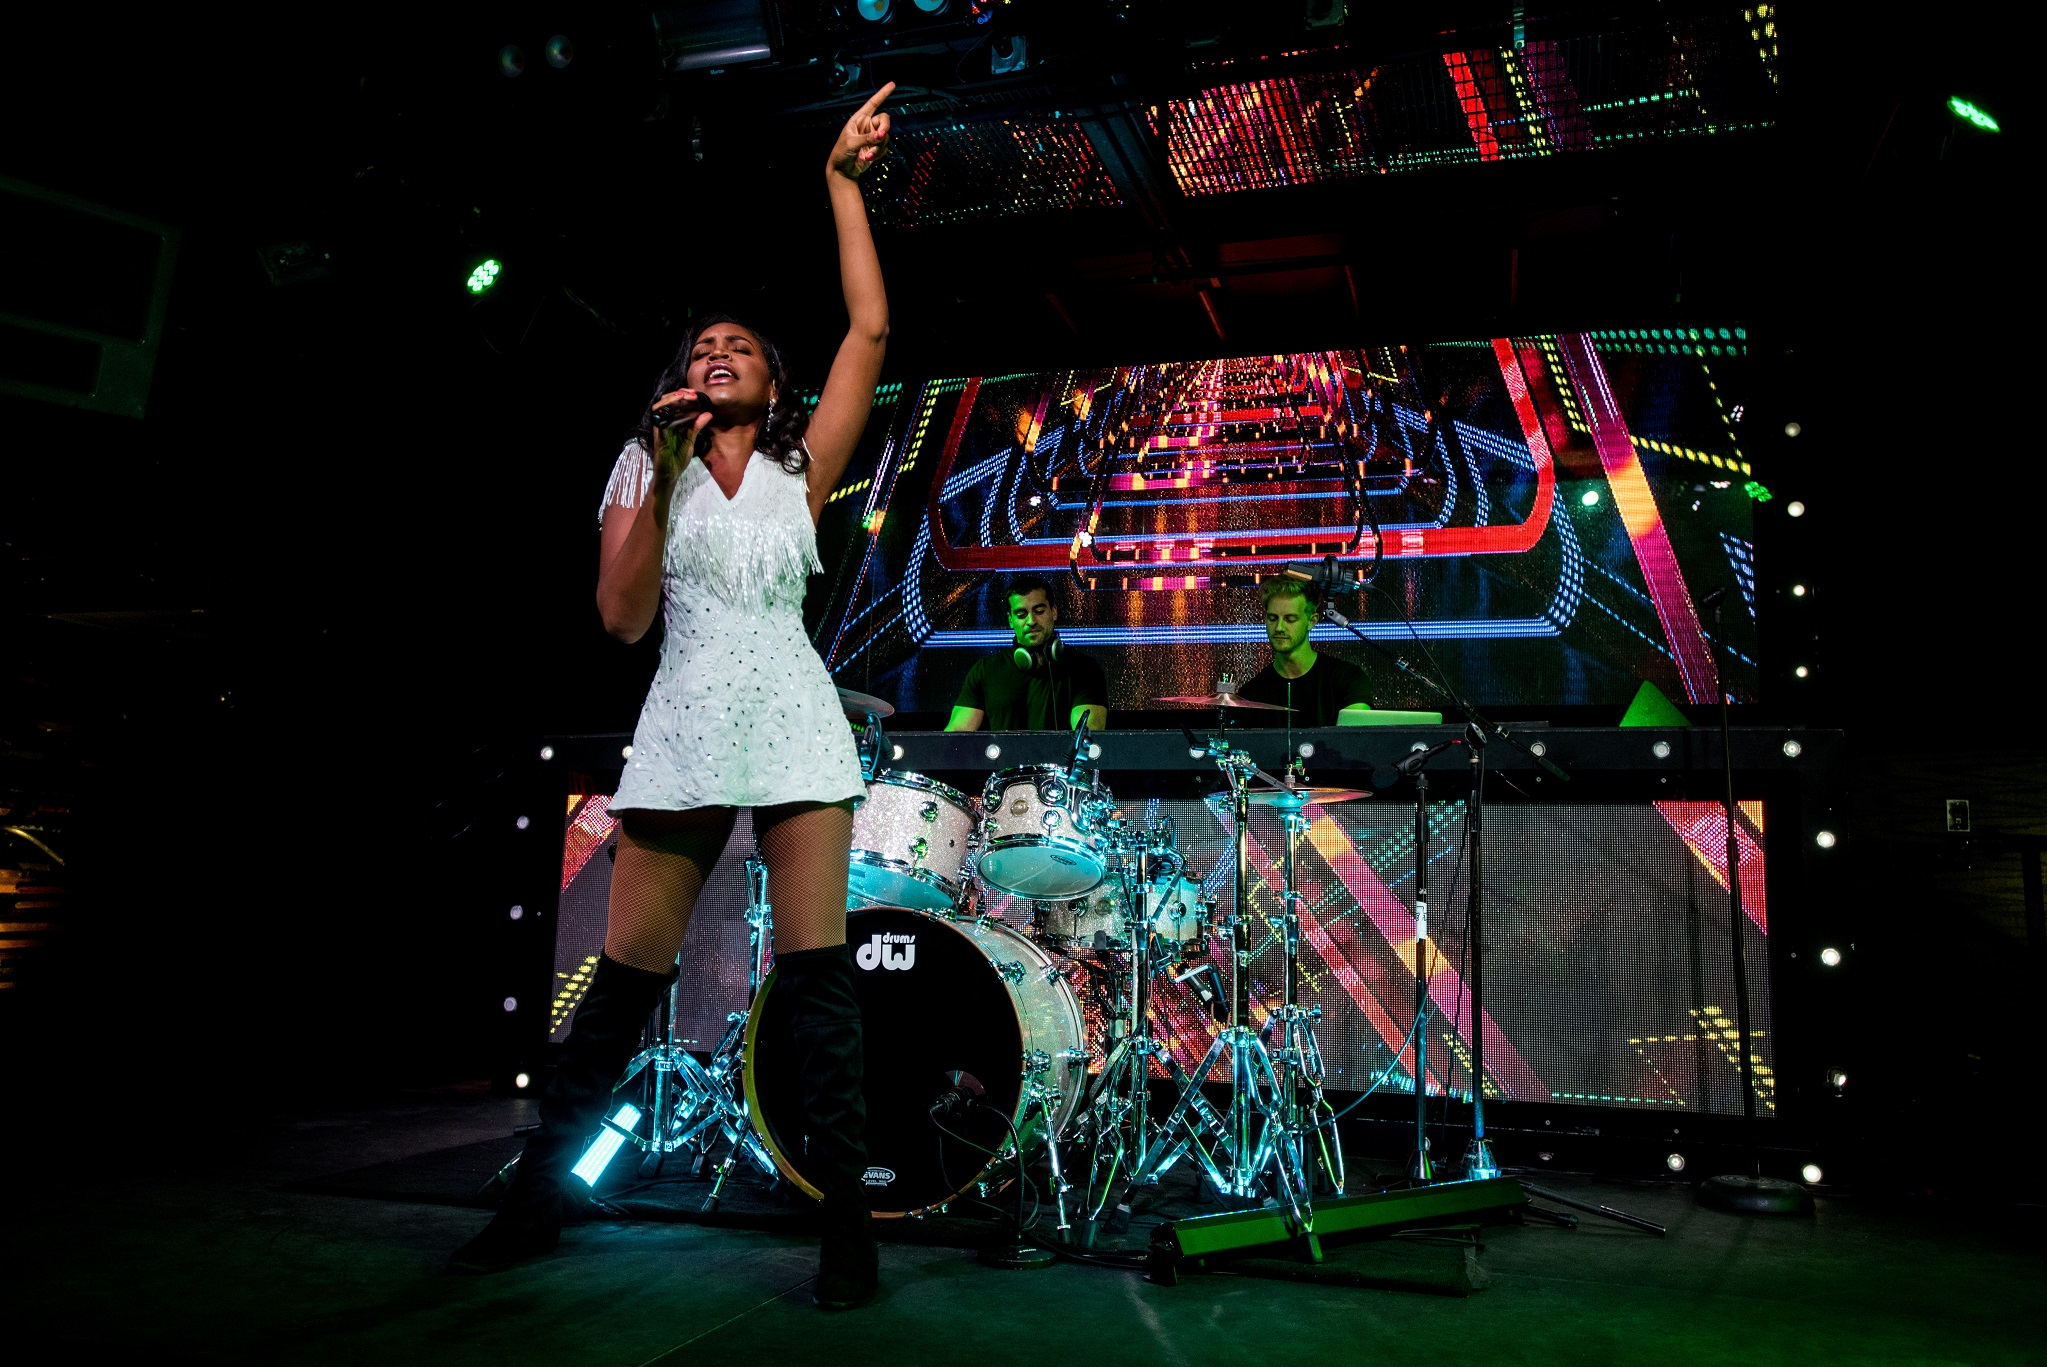 Glorious-Singer-Livetronica Drummer-Producer-Songwriter-Marquee-Nightclub-Video-New York-NY-33lr.jpg